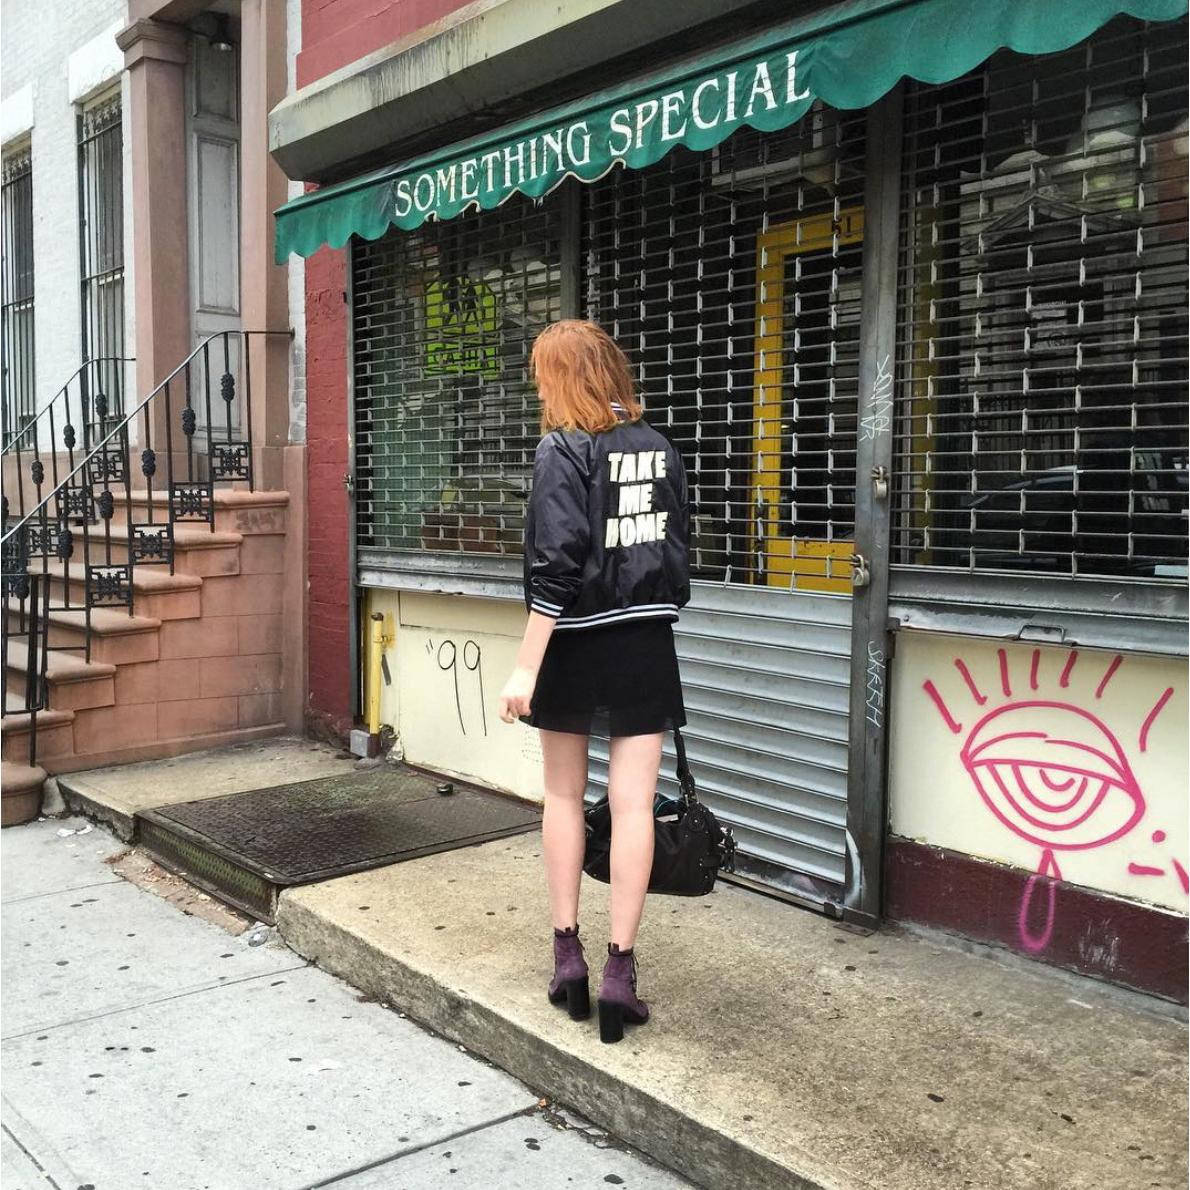 Kaitlin in Little Italy, NYC,September 14, 2015.